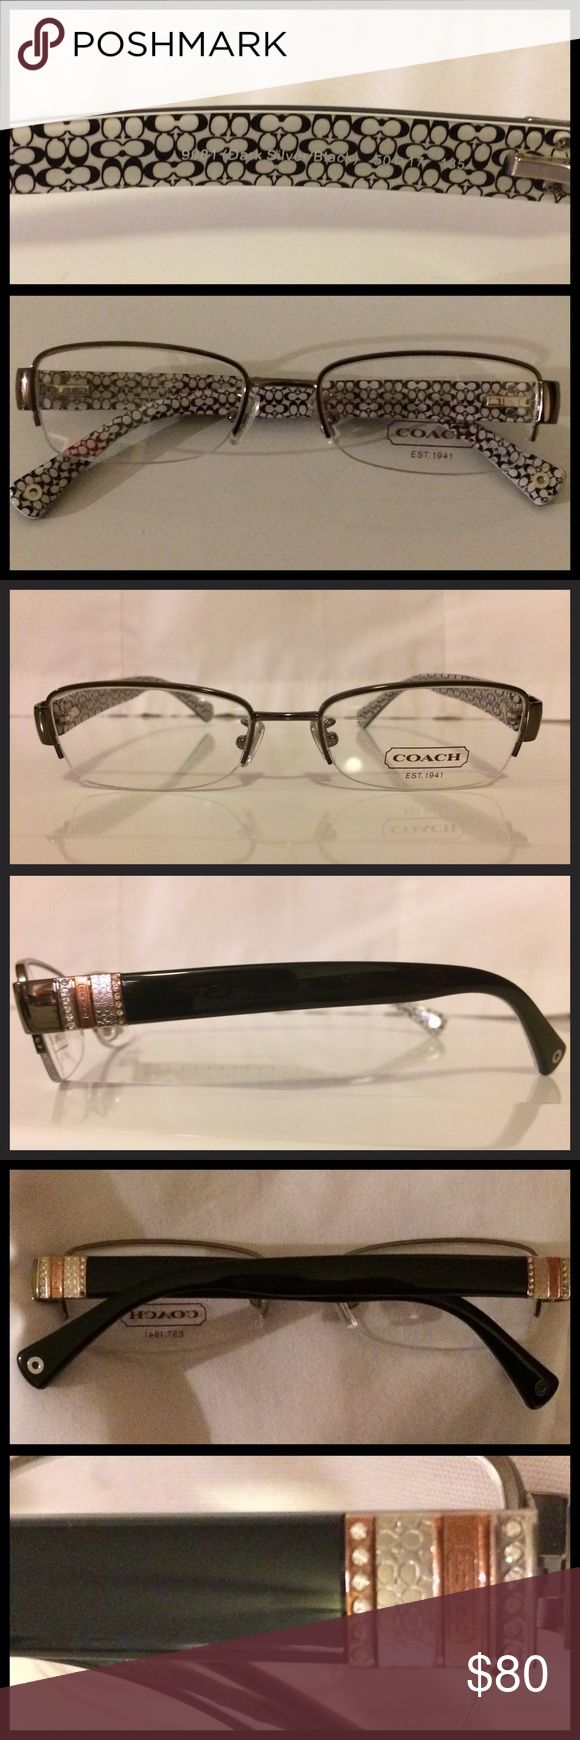 Authentic Coach Eyeglasses Cecily Dark Silver New unused frames only. Authentic Coach. Cute stylish colors! Coach Eyeglasses Cecily HC5027B 9081 Dark Silver front frame, Black and white coach, rose gold coach symbol. Demo Lens. Style- Rectangle Lens- Demo Material- Metal Size- Eye:50 or 52mm-Bridge:17mm-Temple:135mm. Frames only. Price firm. No trades Coach Accessories Glasses